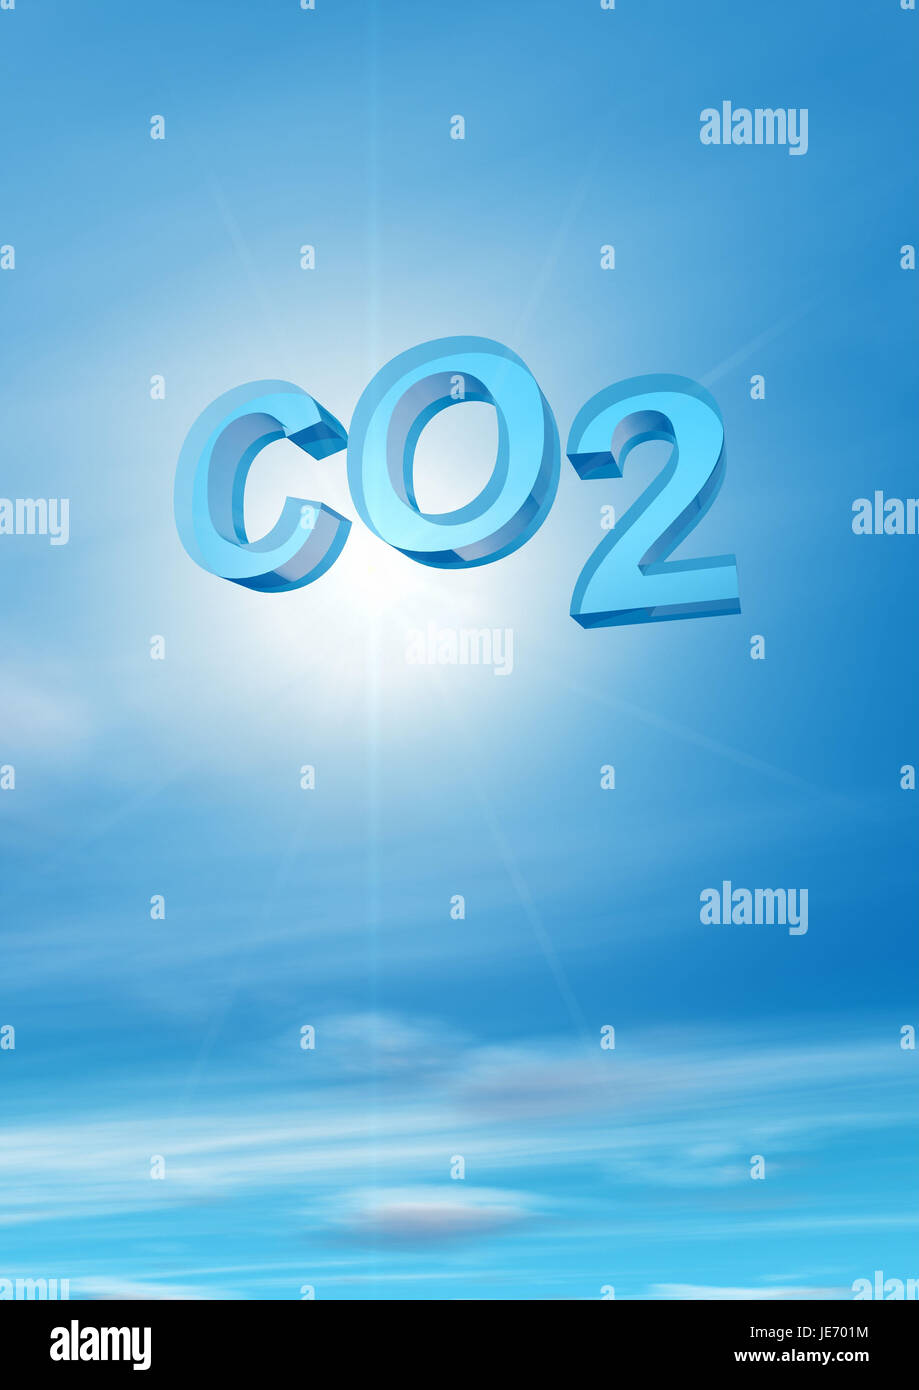 CO2 - carbon dioxide, - Stock Image